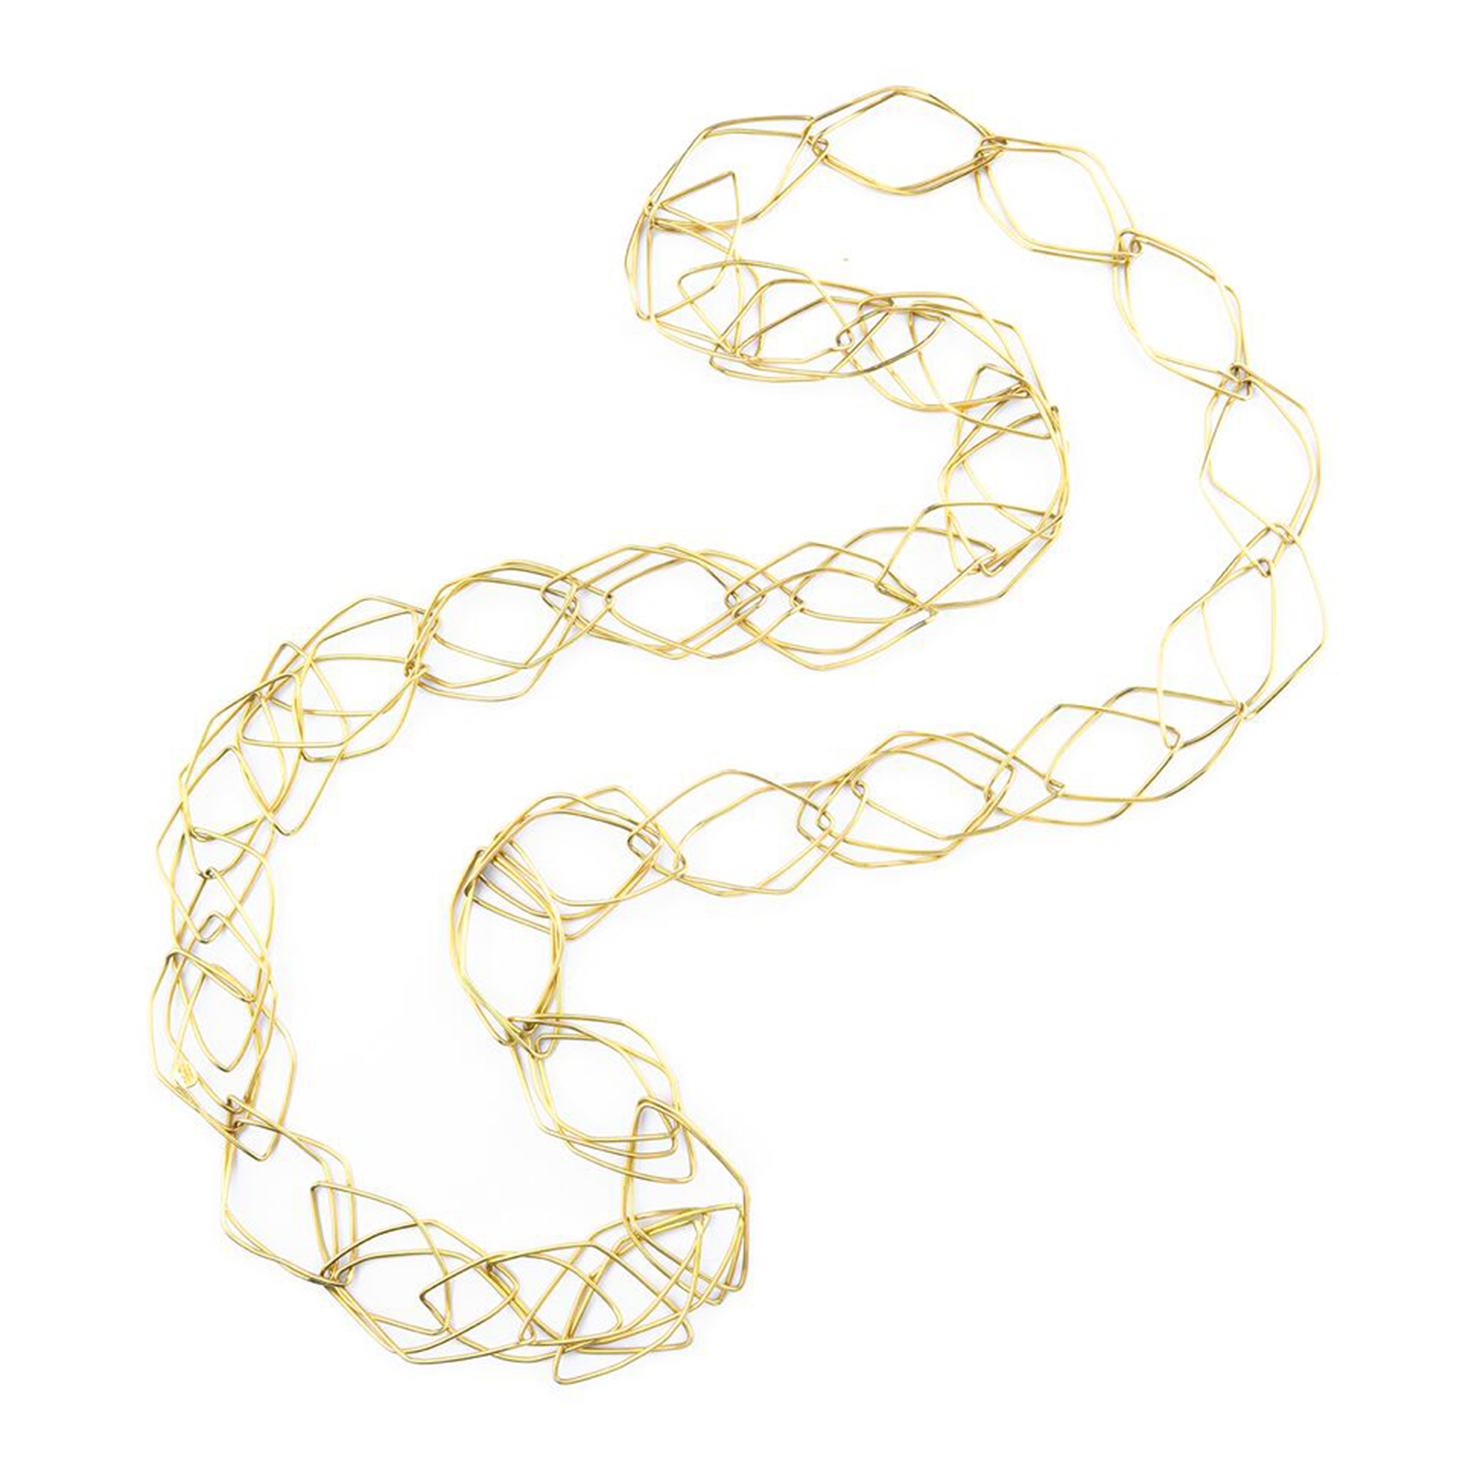 A Gold Necklace, by Hermes, circa 1970